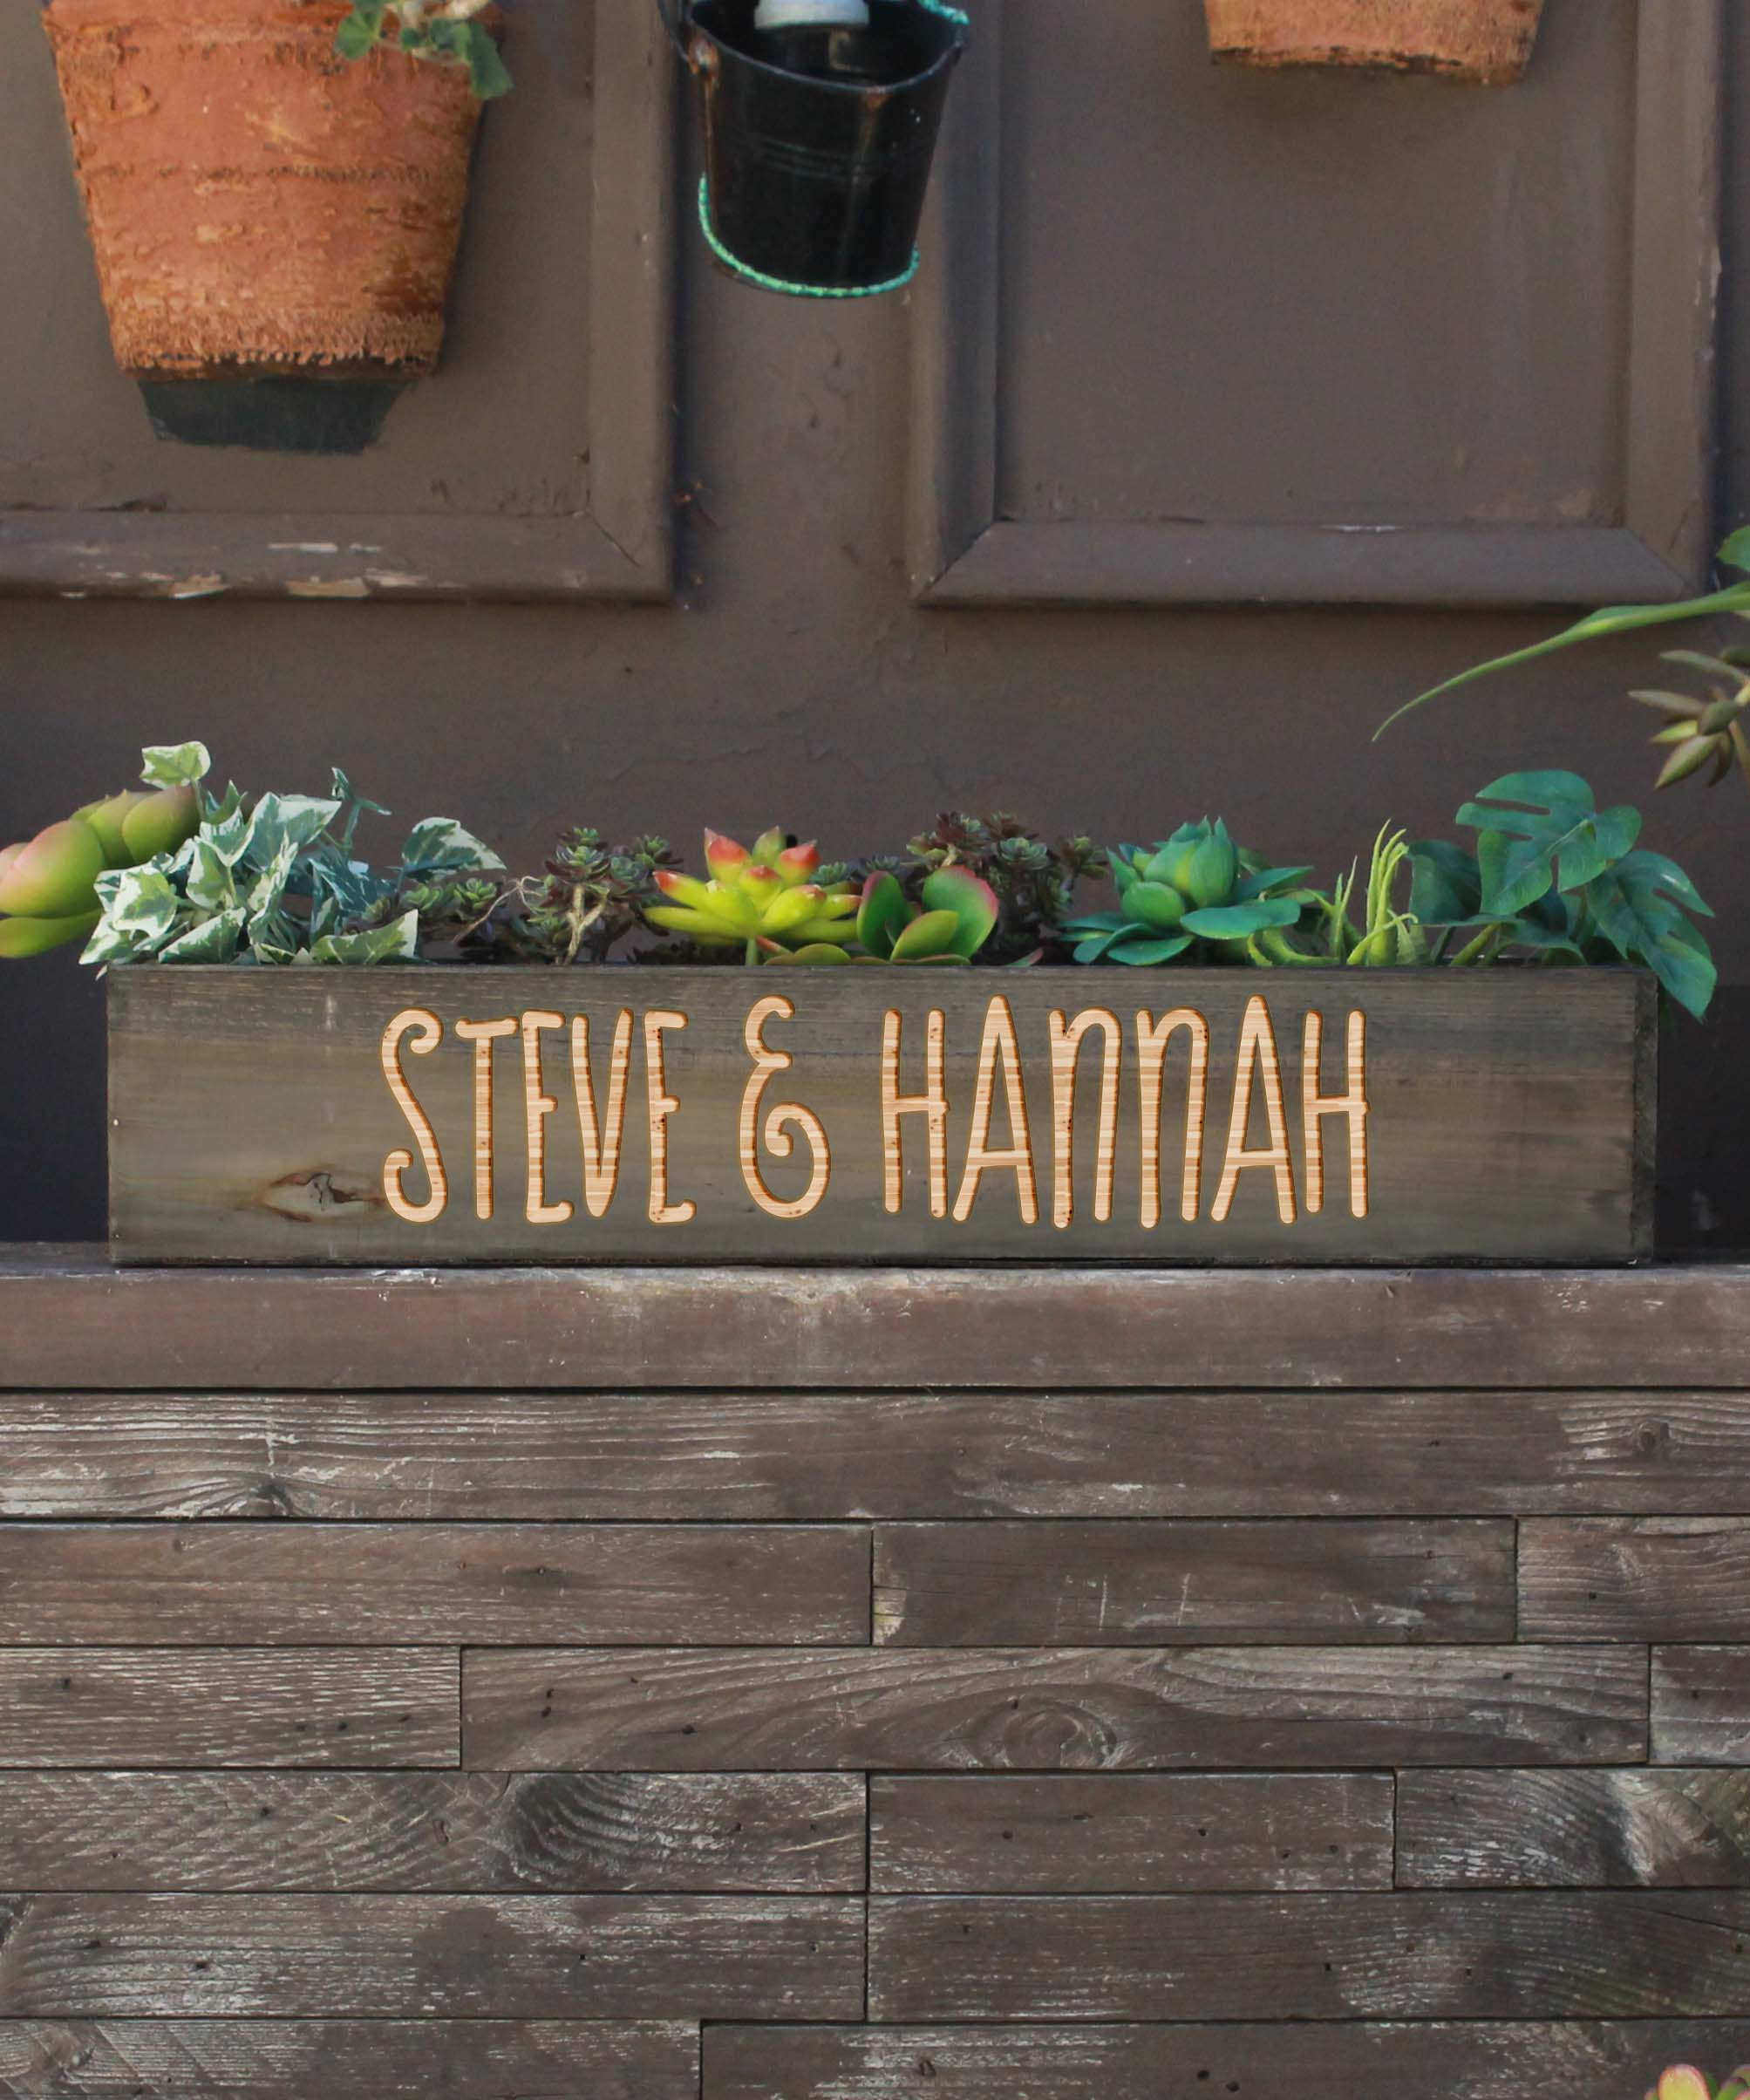 20 x 4 Personalized Planter Box | Steve Hannah